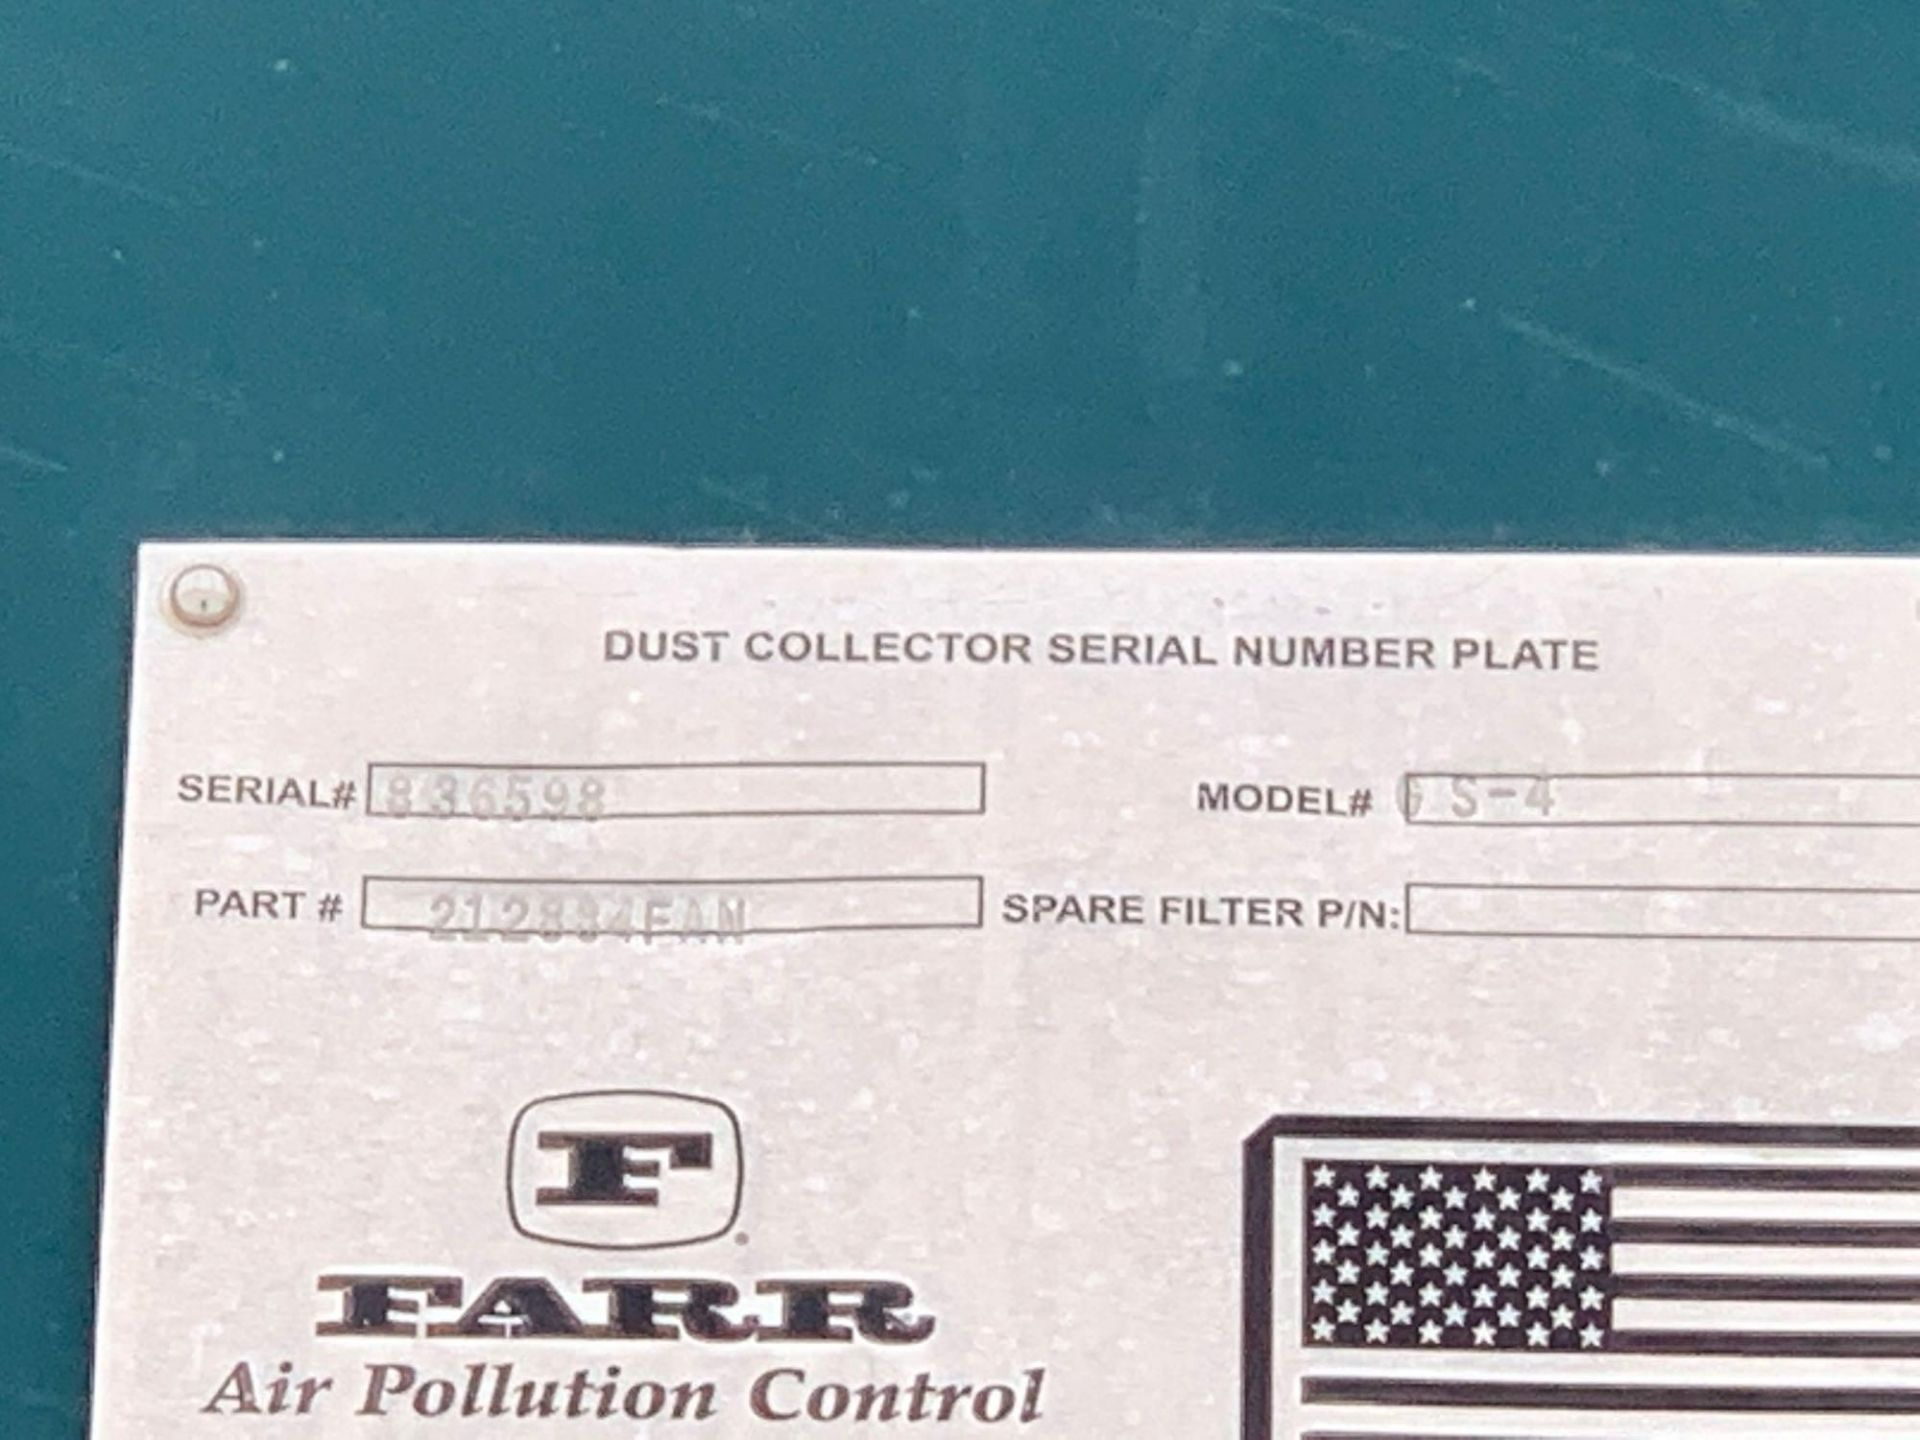 Farr Dust Collector Model GS-4 Serial Number: 836598 Part Number: 212834FAN - Image 9 of 10